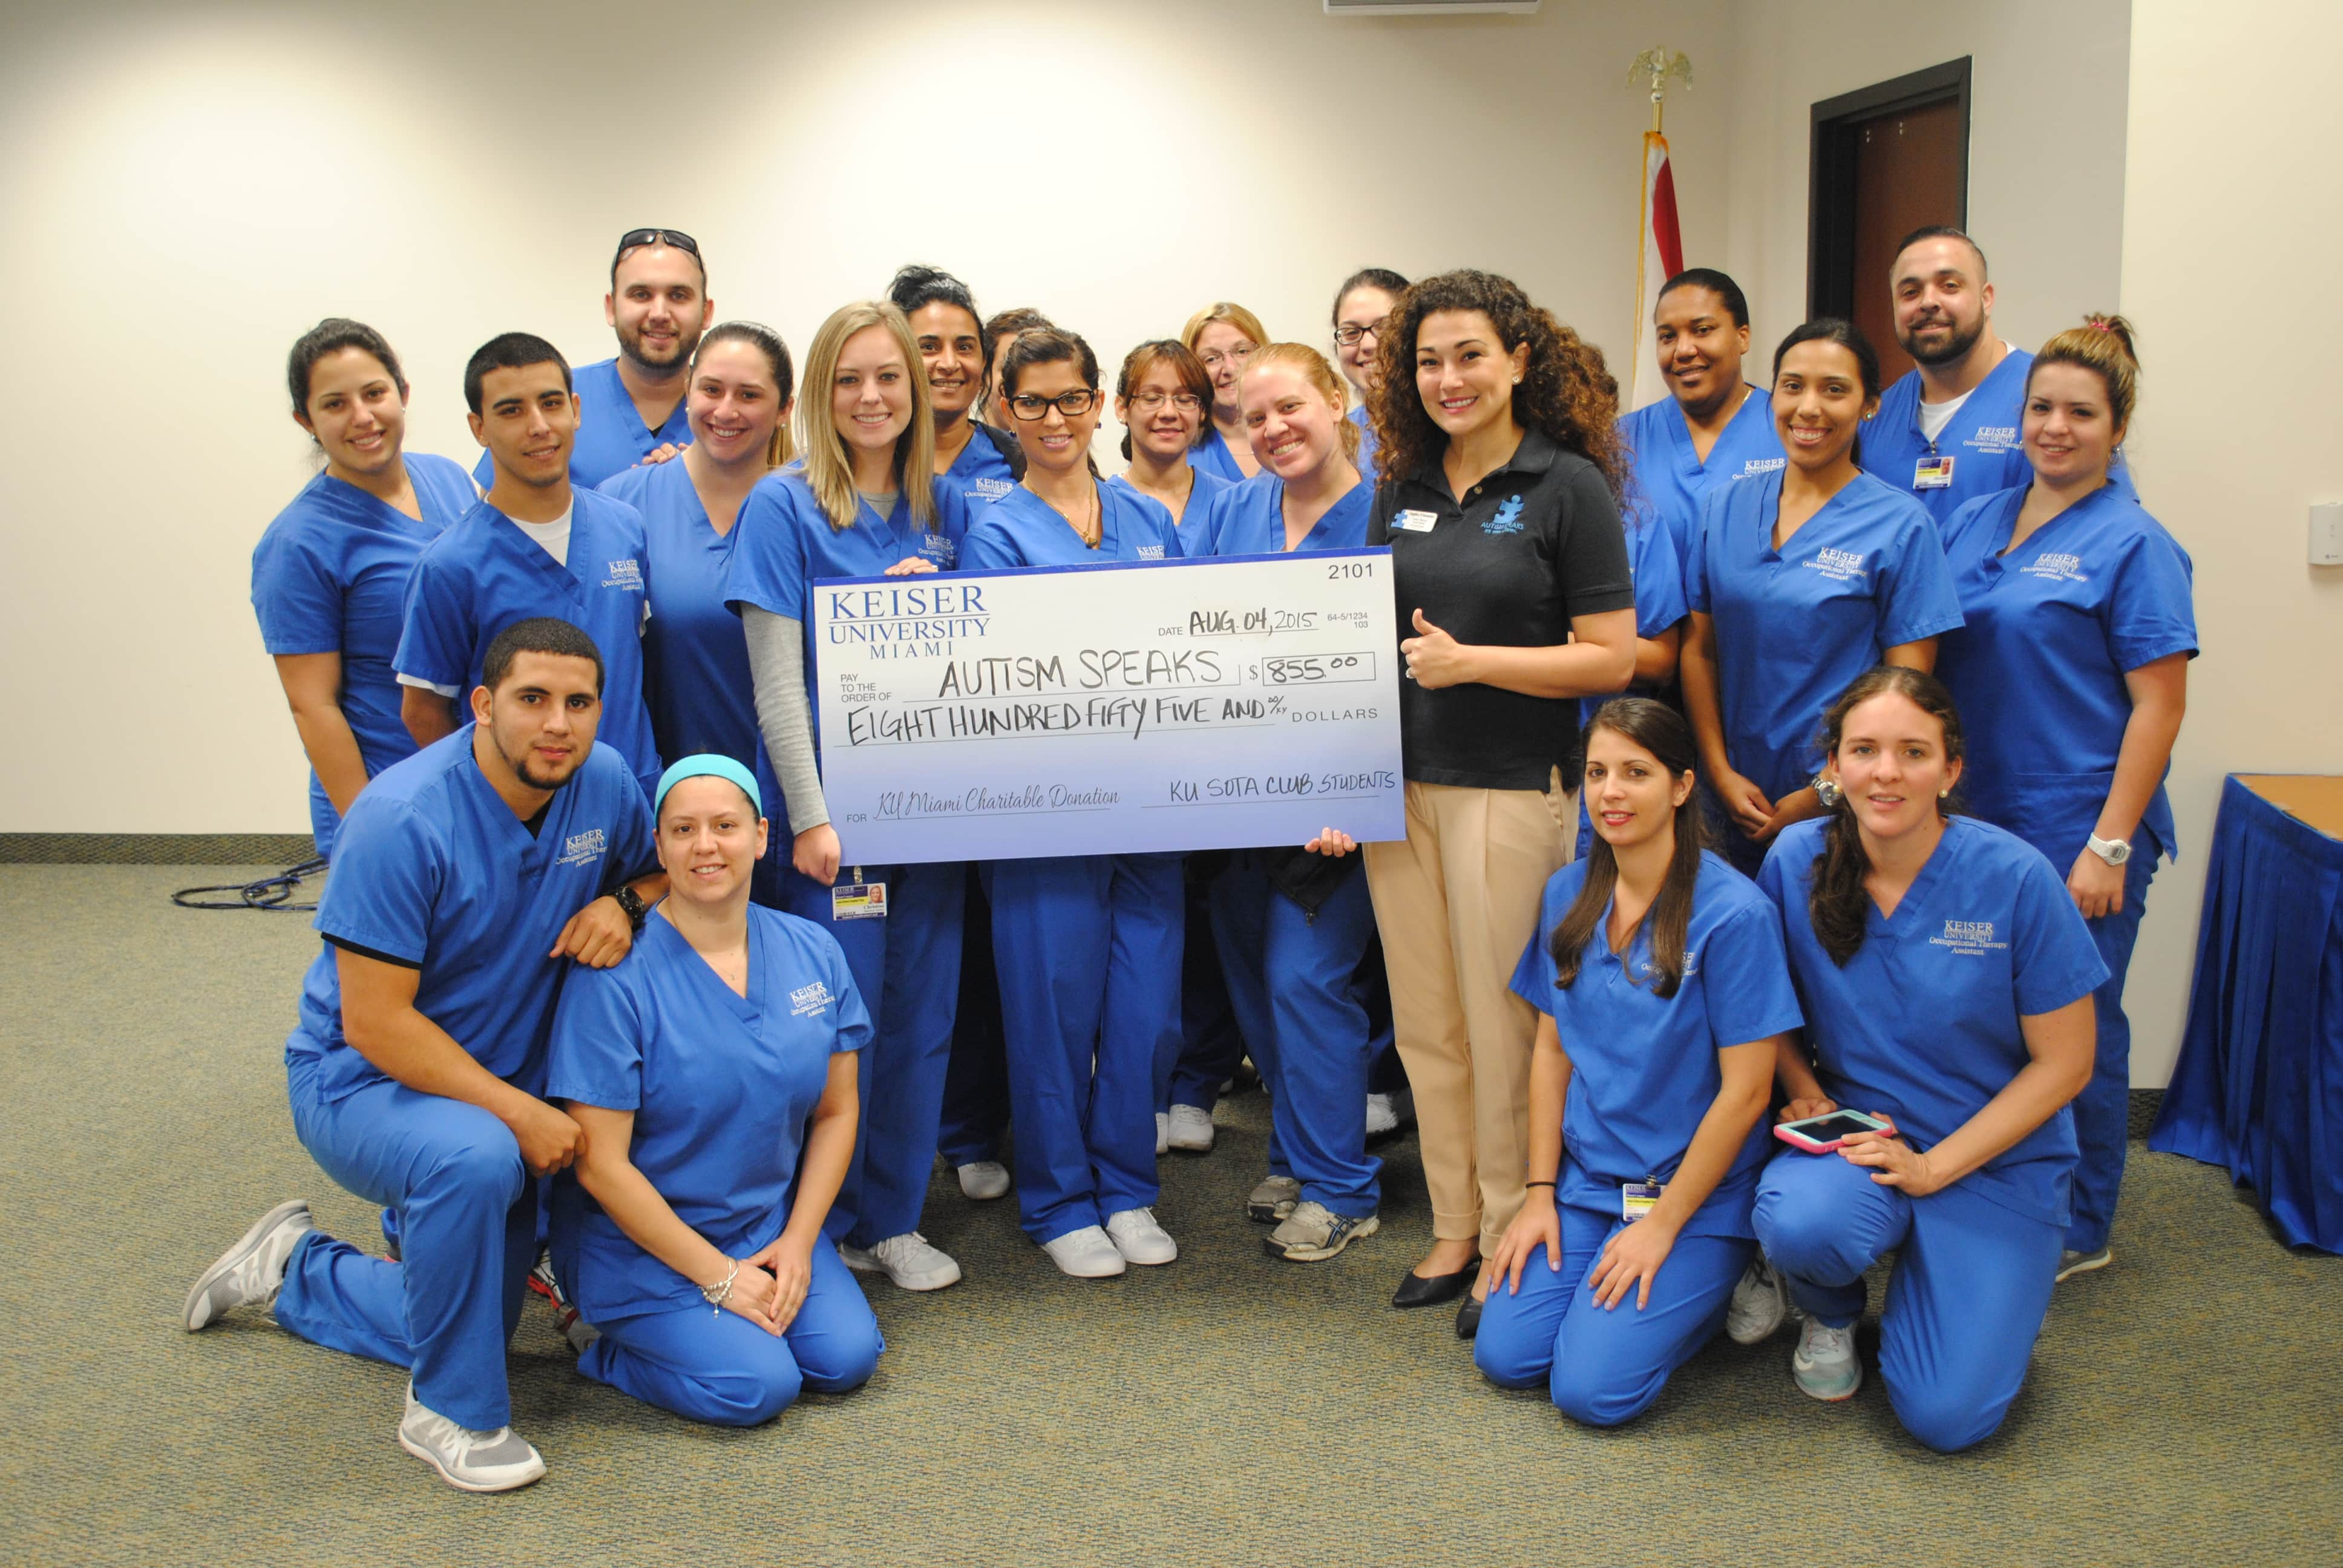 Student Occupational Therapy Assistant Club Raised Money for Autism Speaks